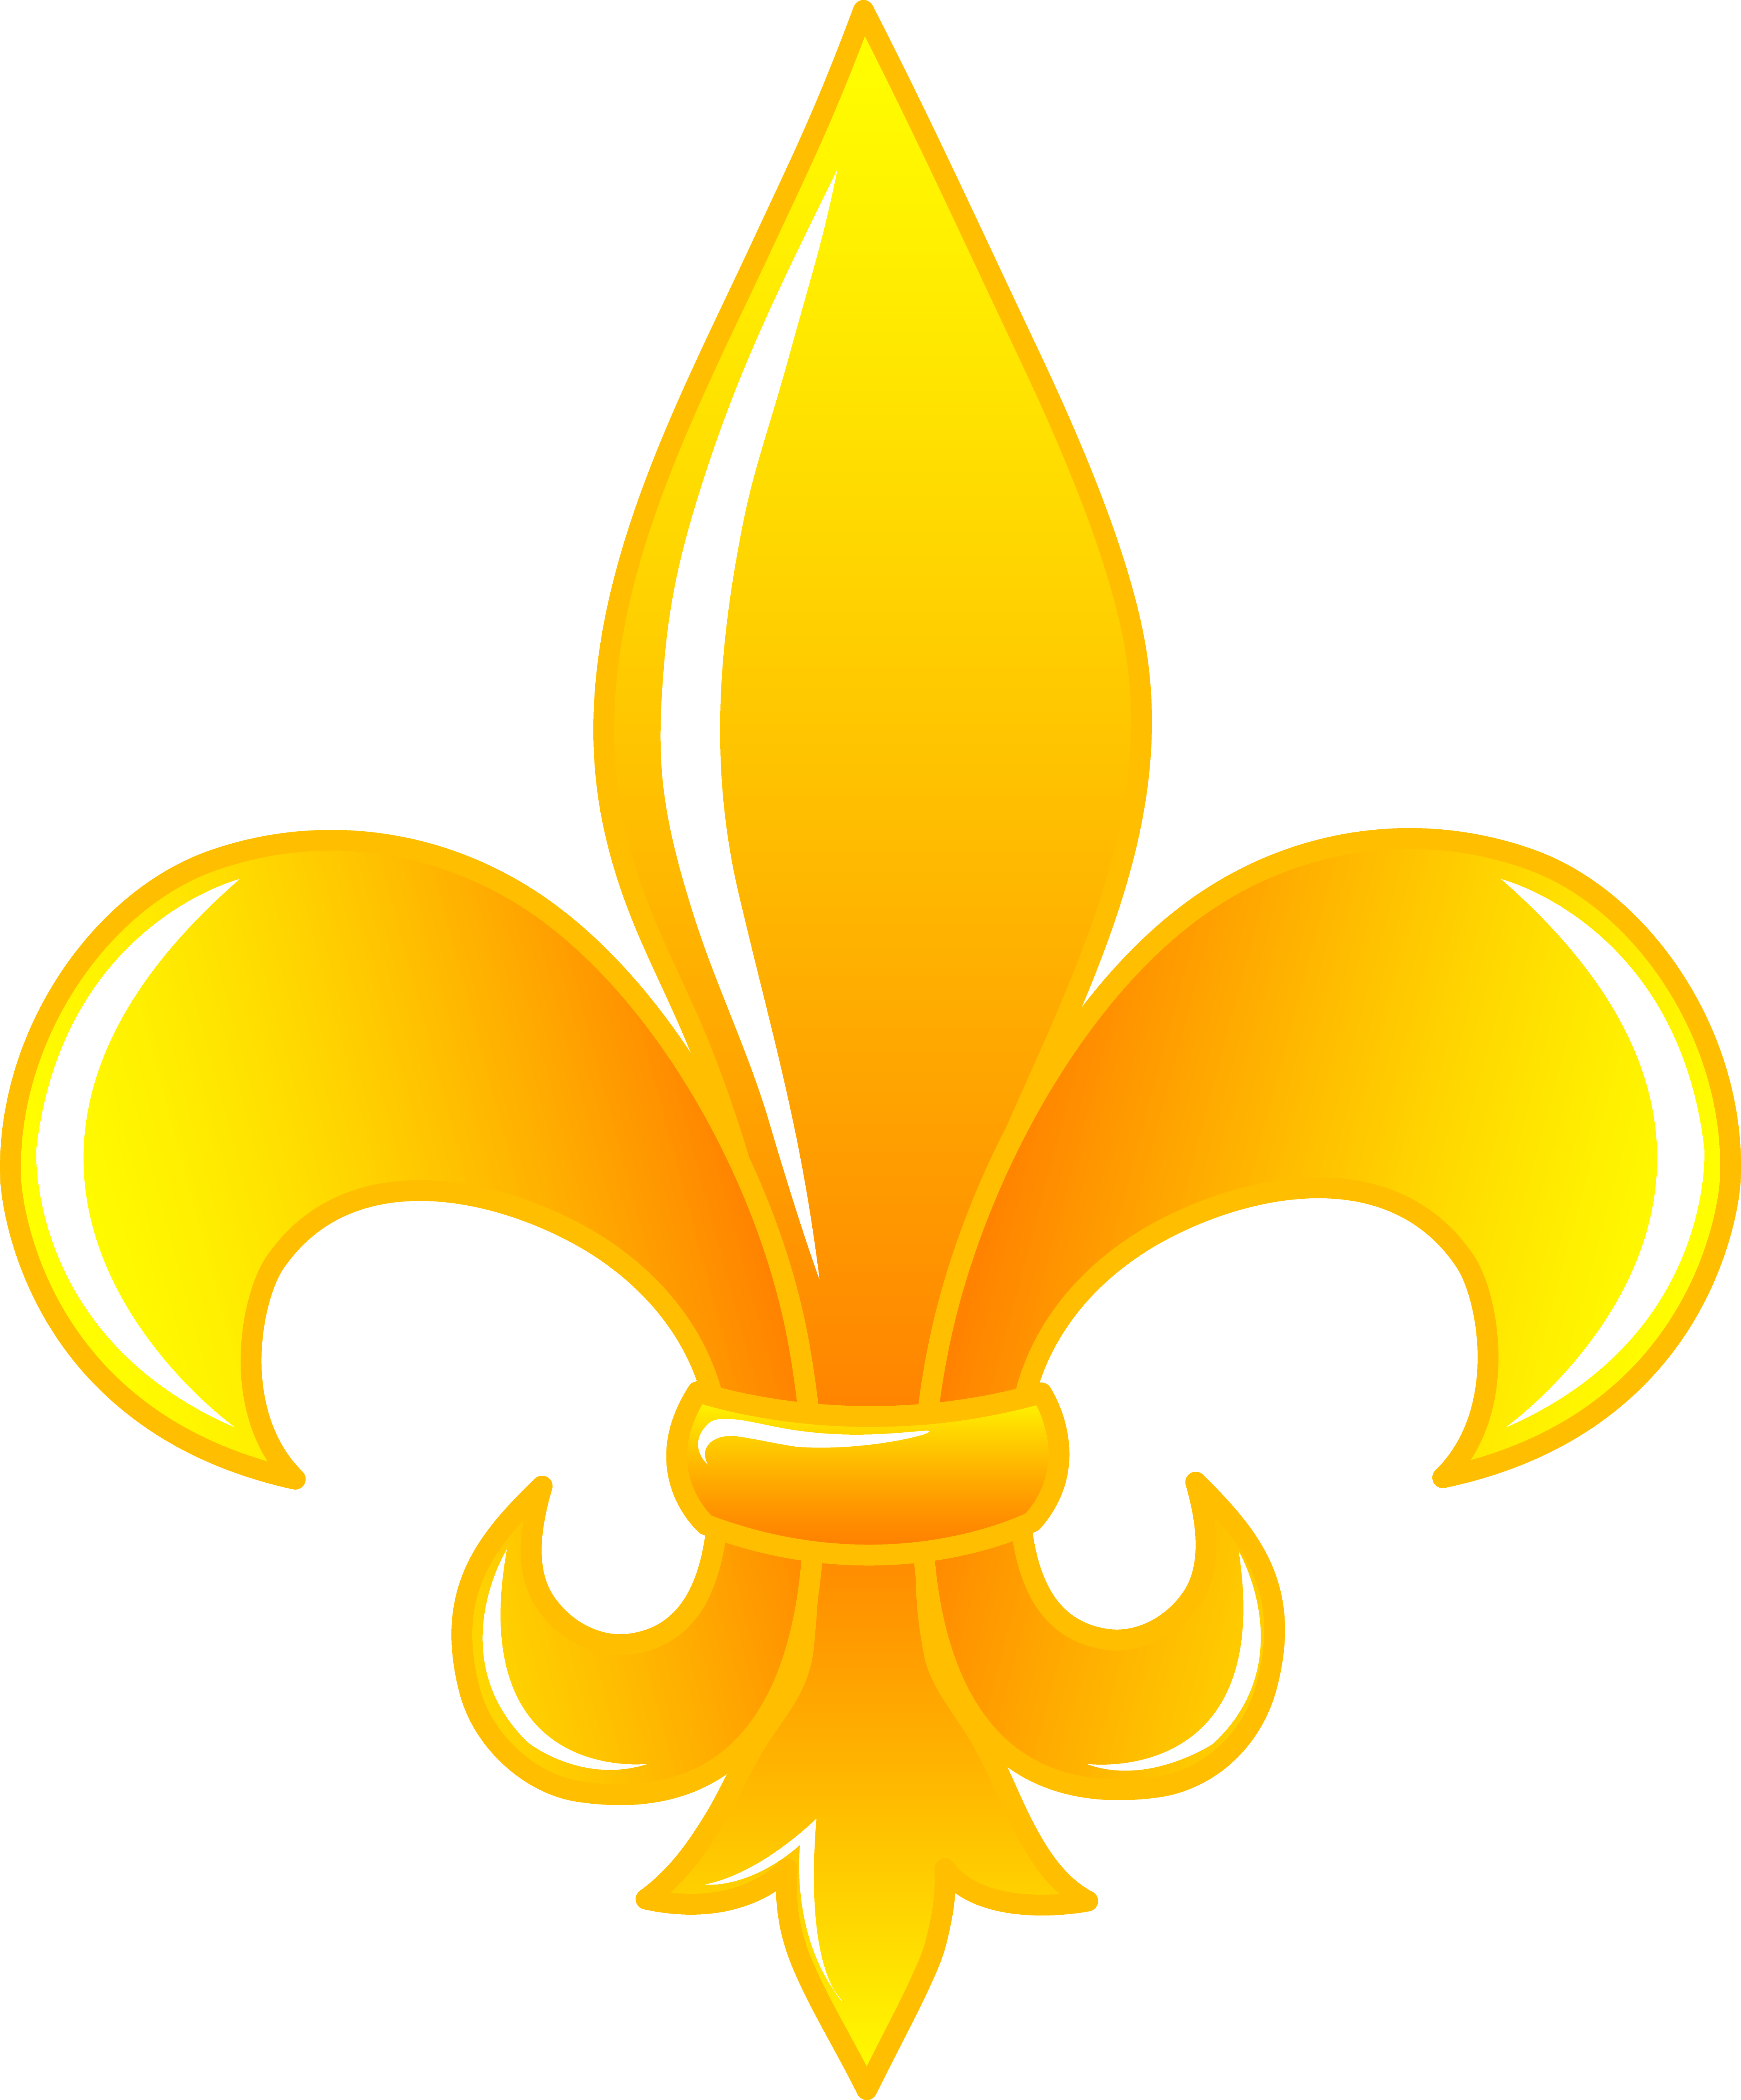 clip art black and white stock Fleur de lis clipart. Shiny gold clip art